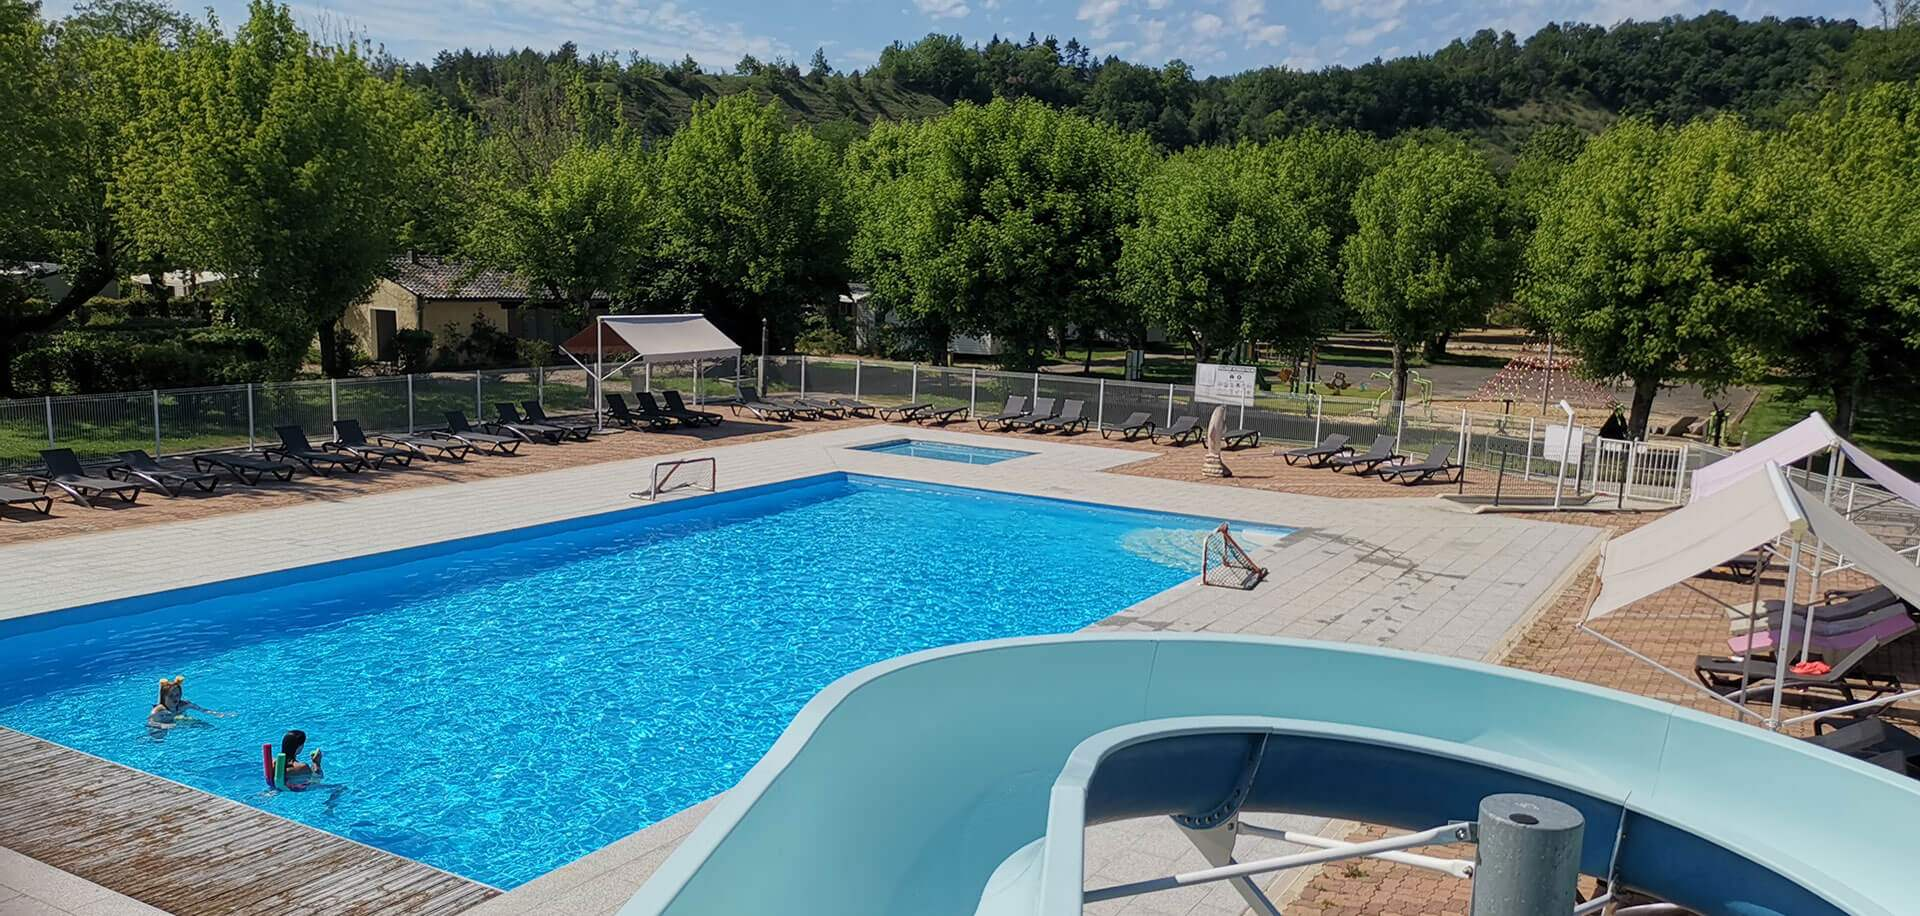 Swimming pool of the campsite in Périgord